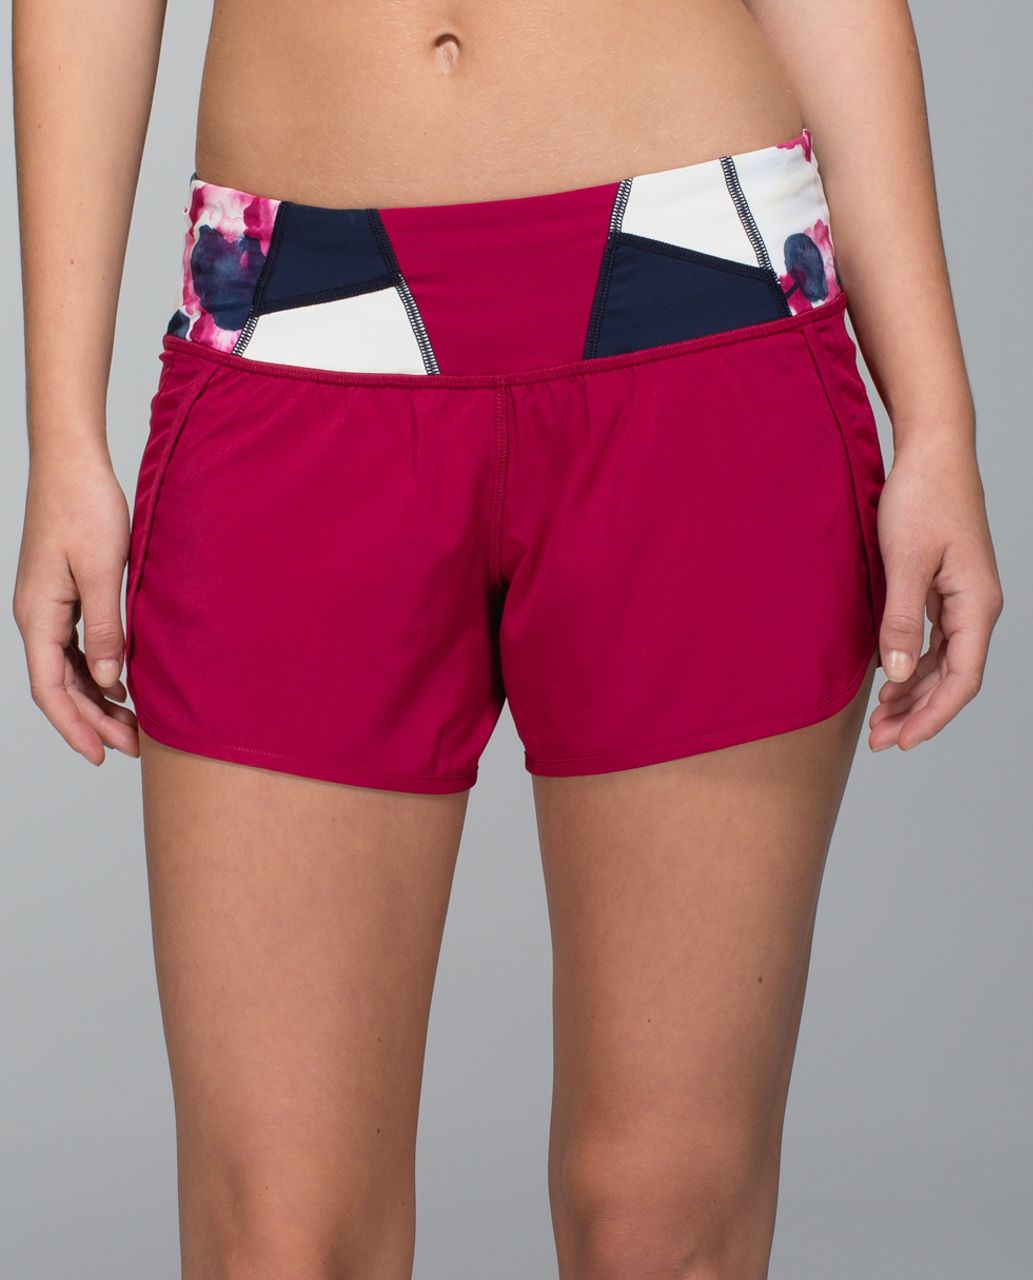 Lululemon Run Times Short *4-way stretch - Bumble Berry / Fa14 Quilt 20